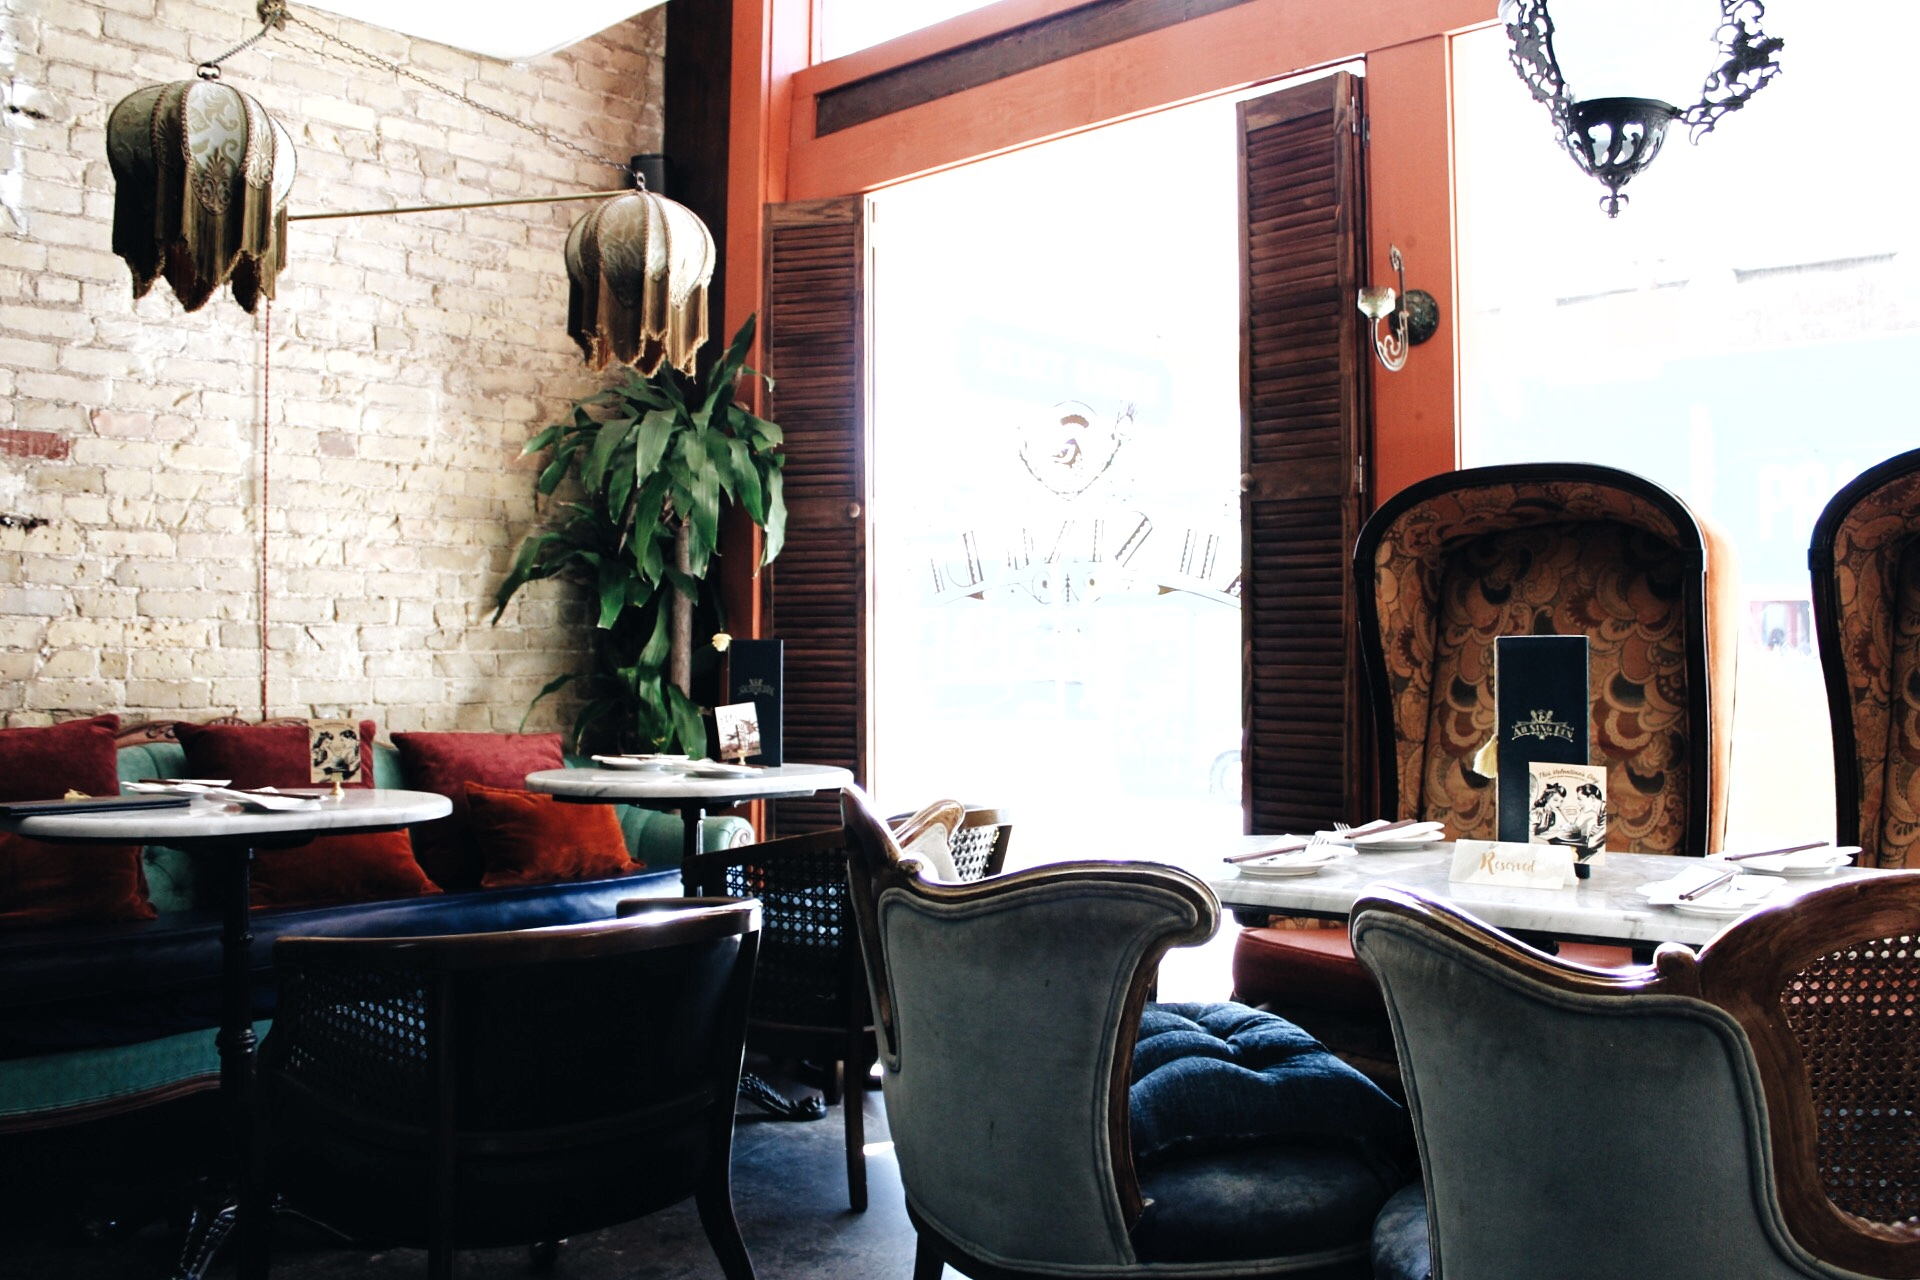 Most Instagrammable Places and Restaurants in Austin Texas by www.tresgigi.com